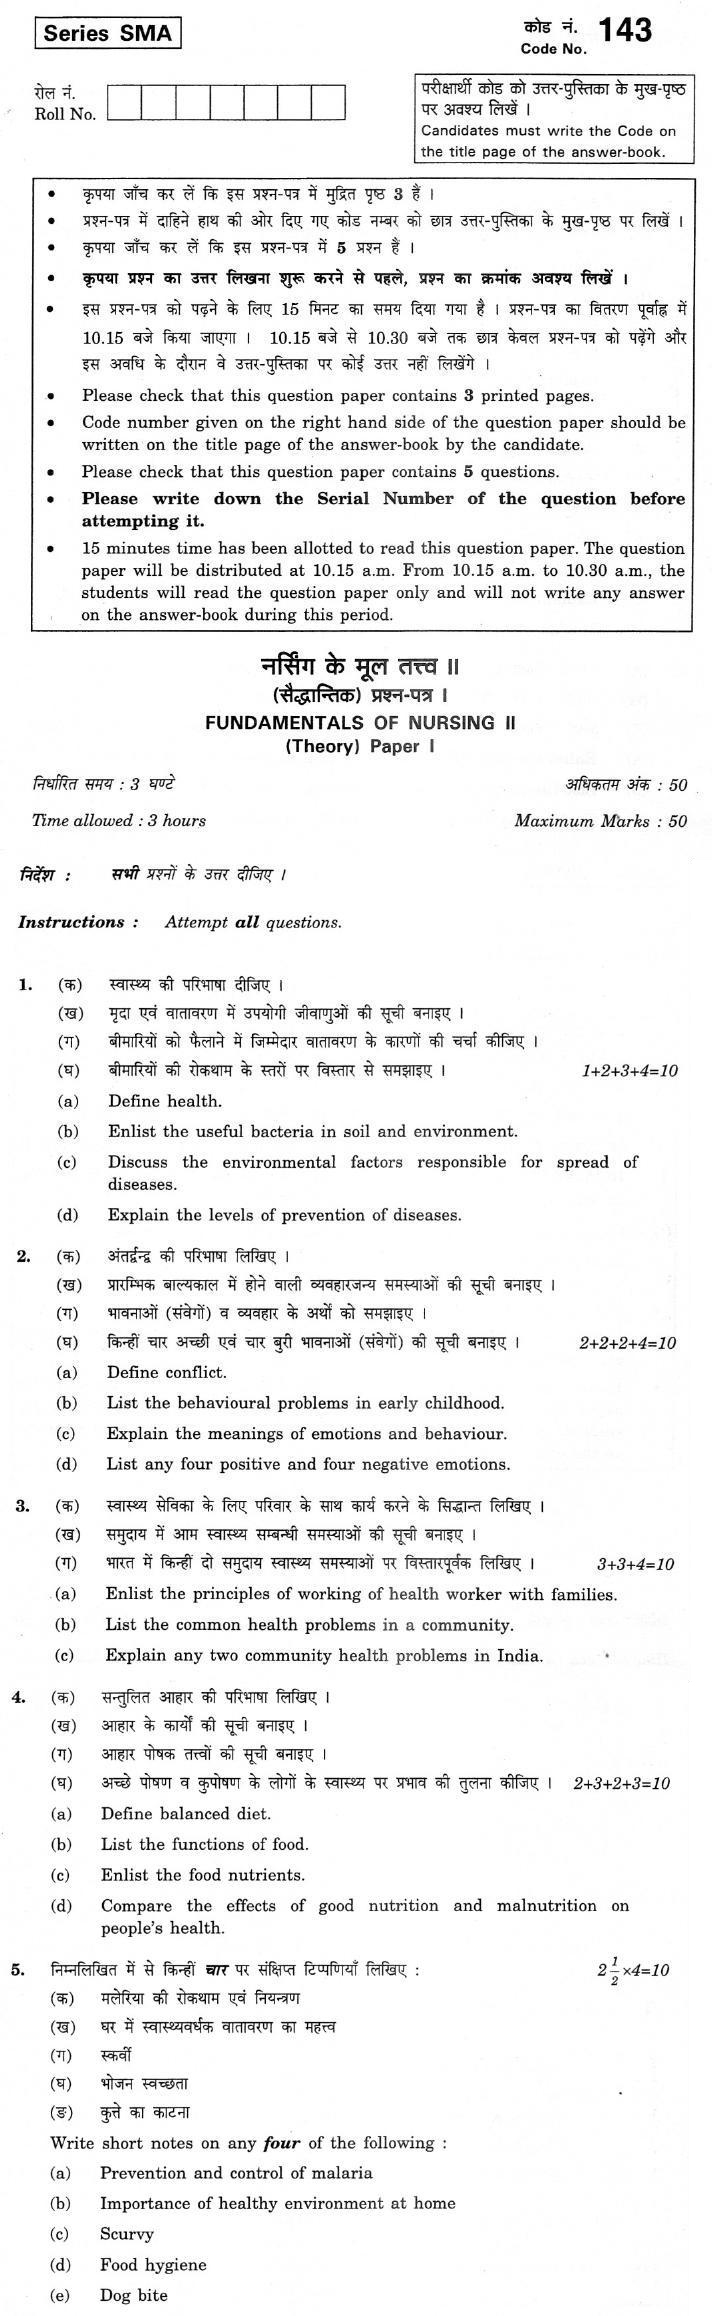 CBSE Class XII Previous Year Question Paper 2012 Fundamentals of Nursing II